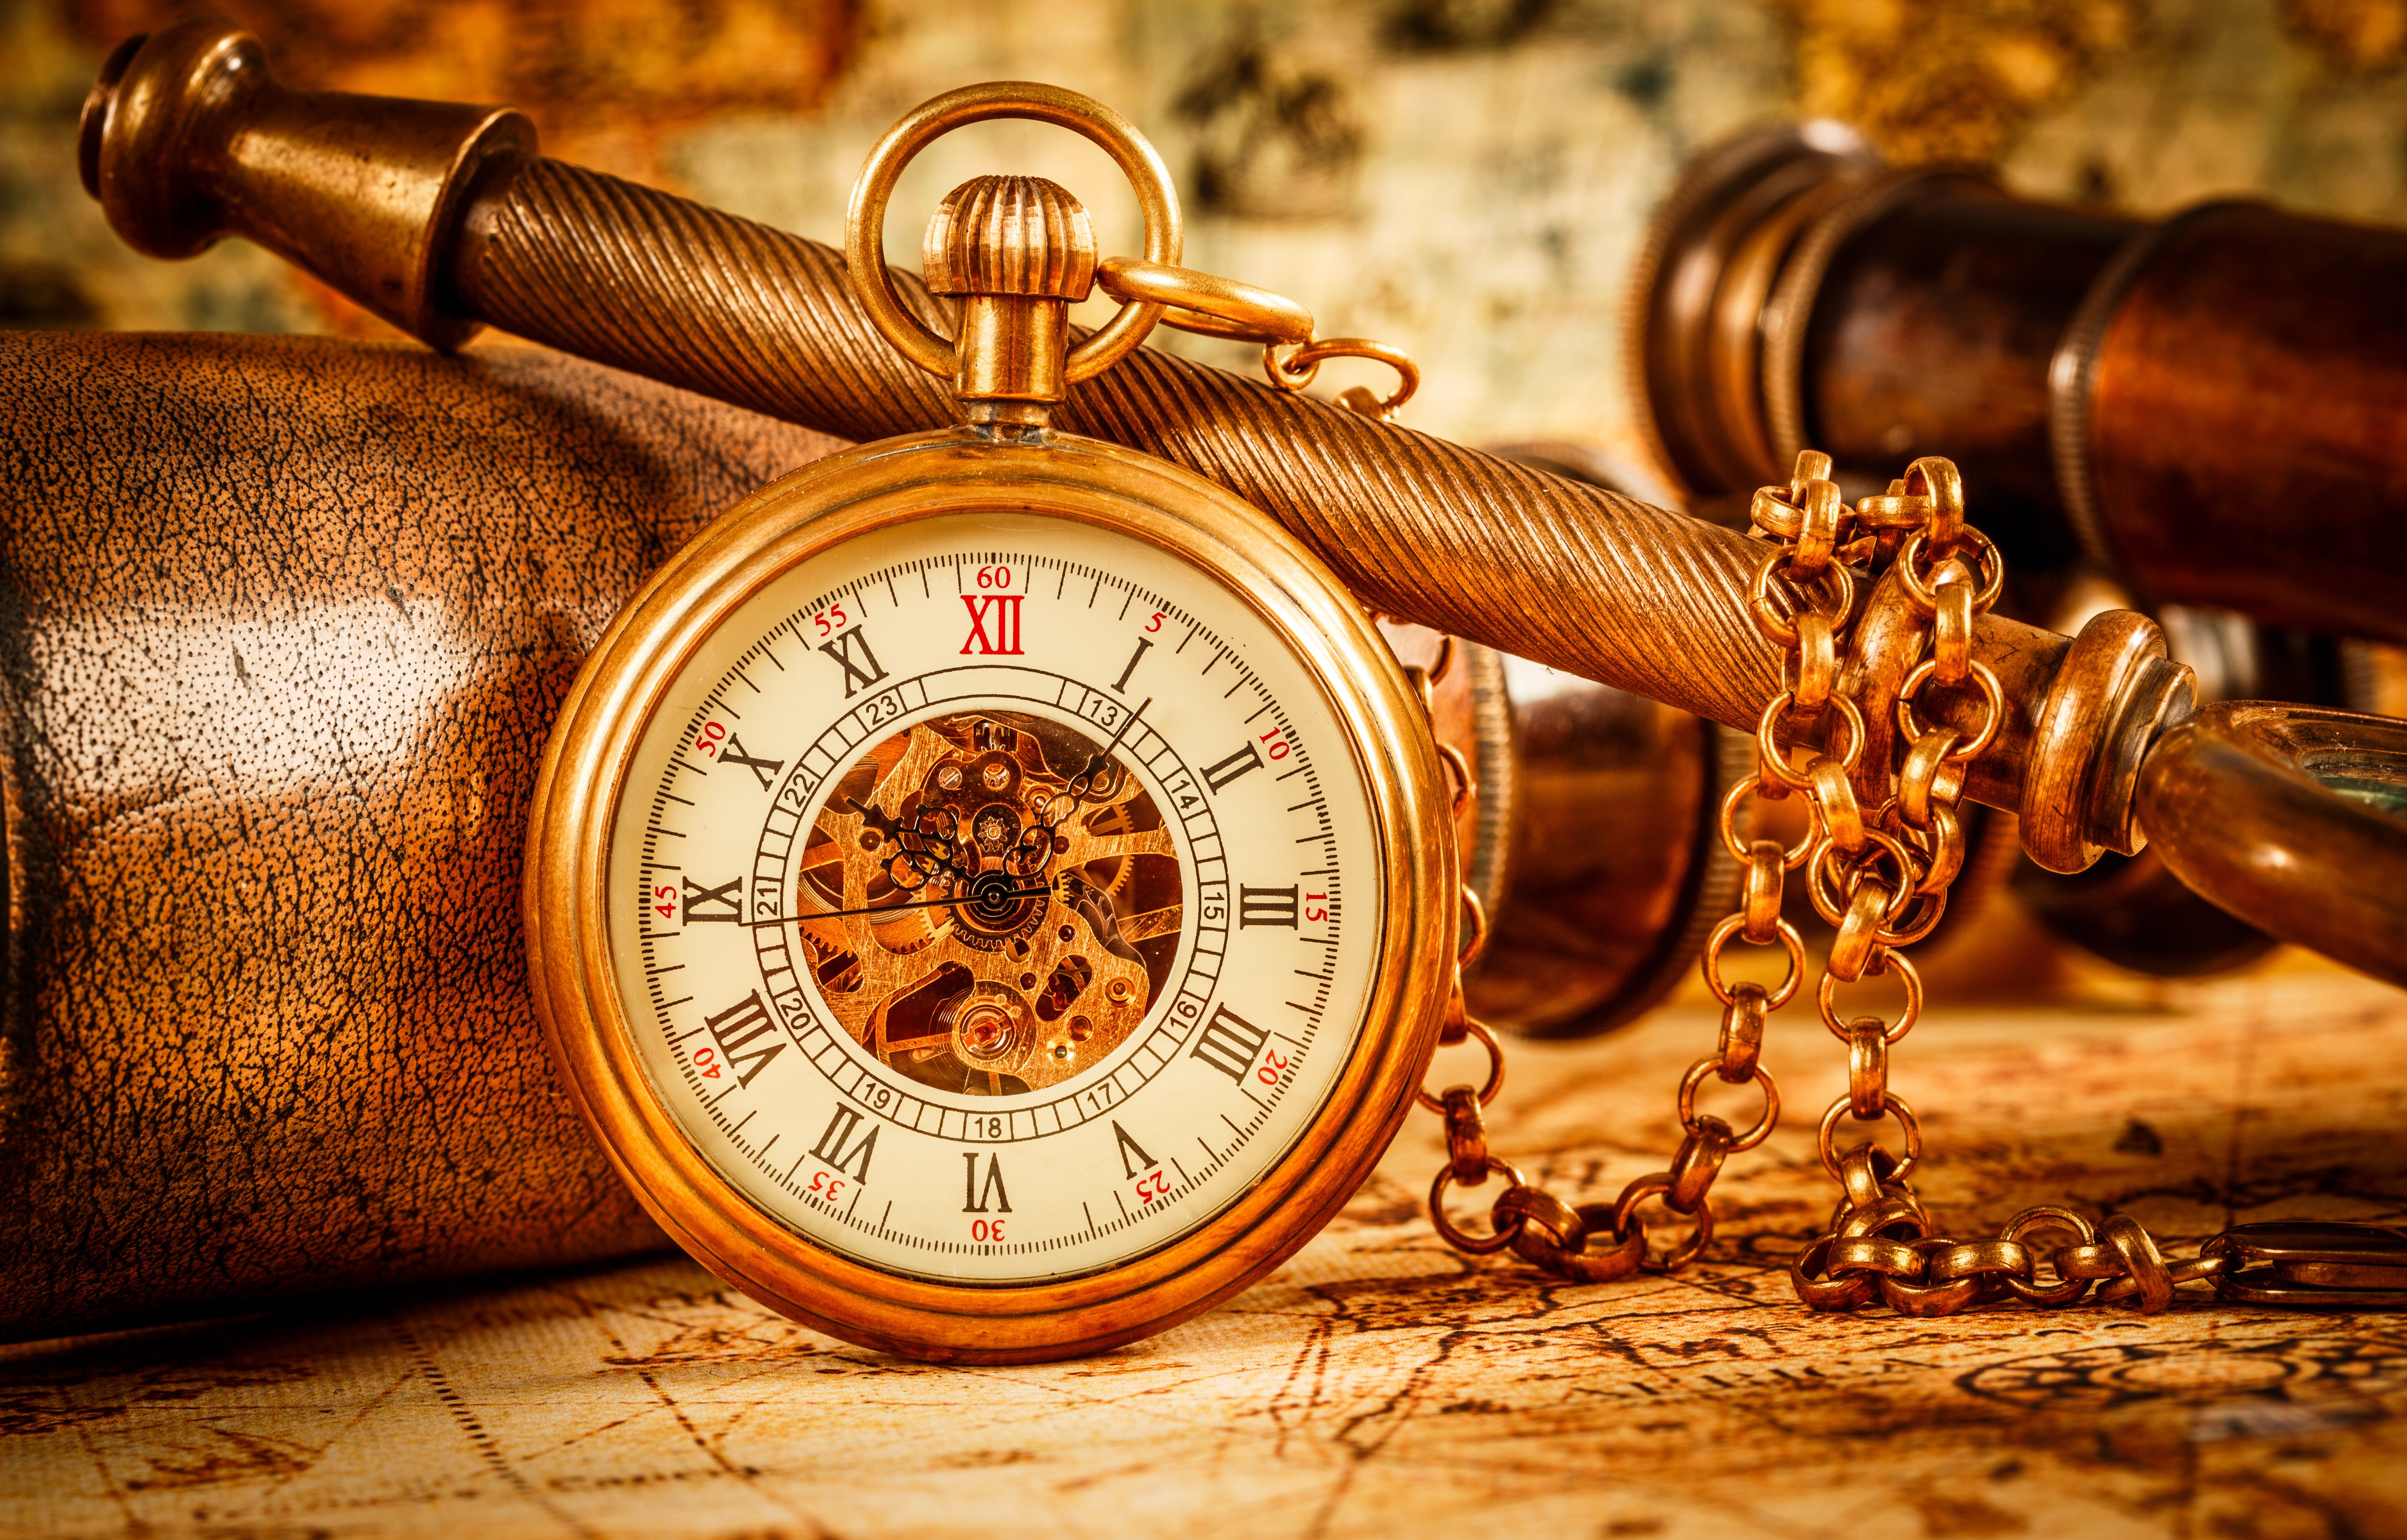 man made watch clock bokeh vintage pocket watch old wallpaper download